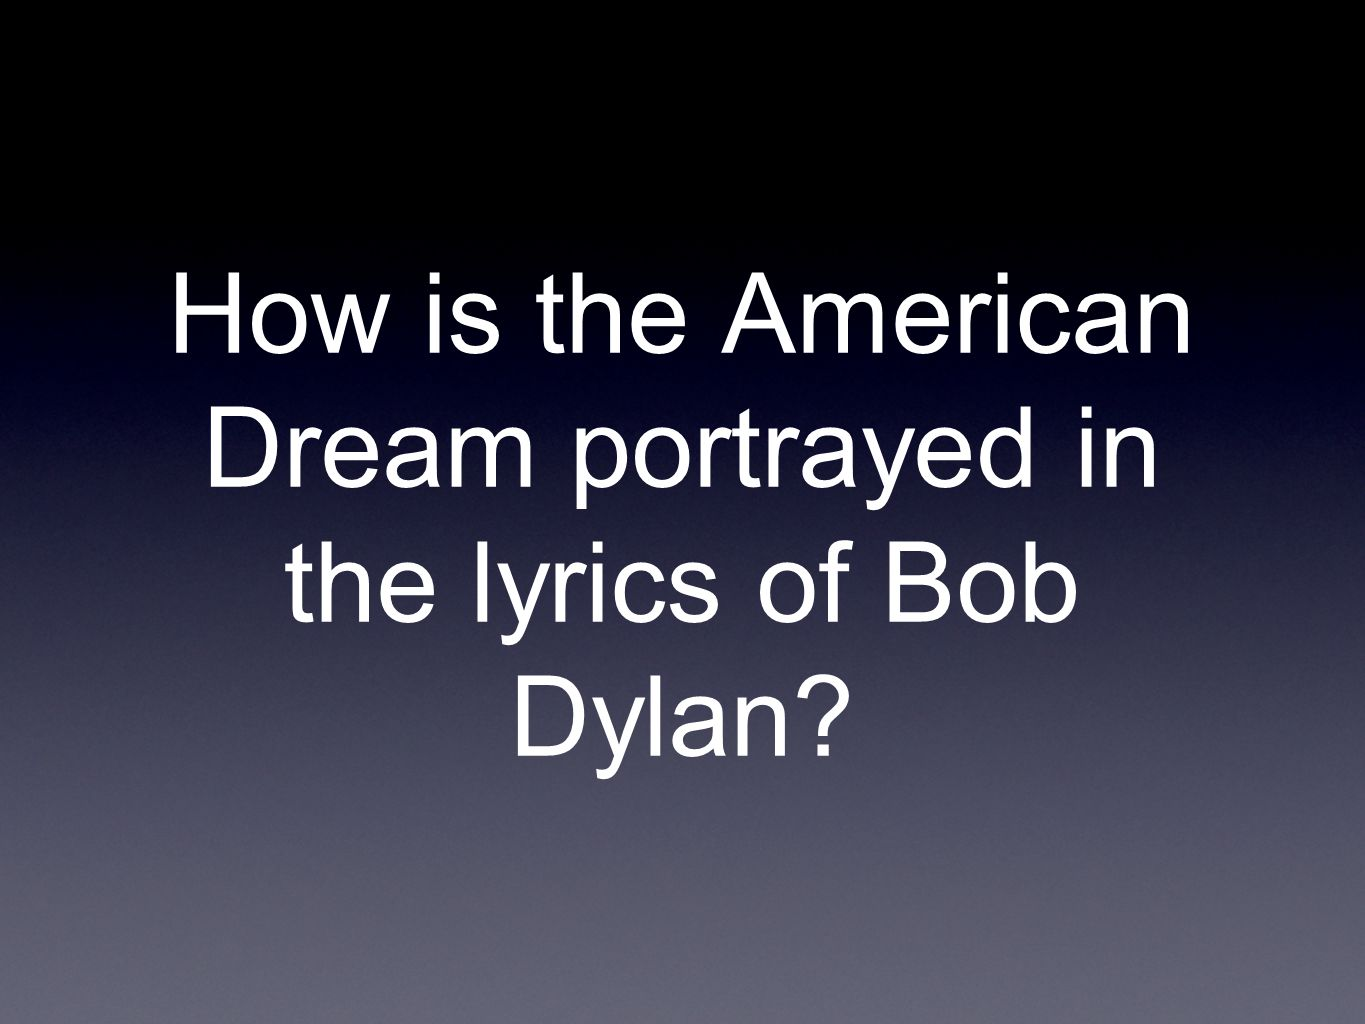 How is the American Dream portrayed in the lyrics of Bob Dylan?